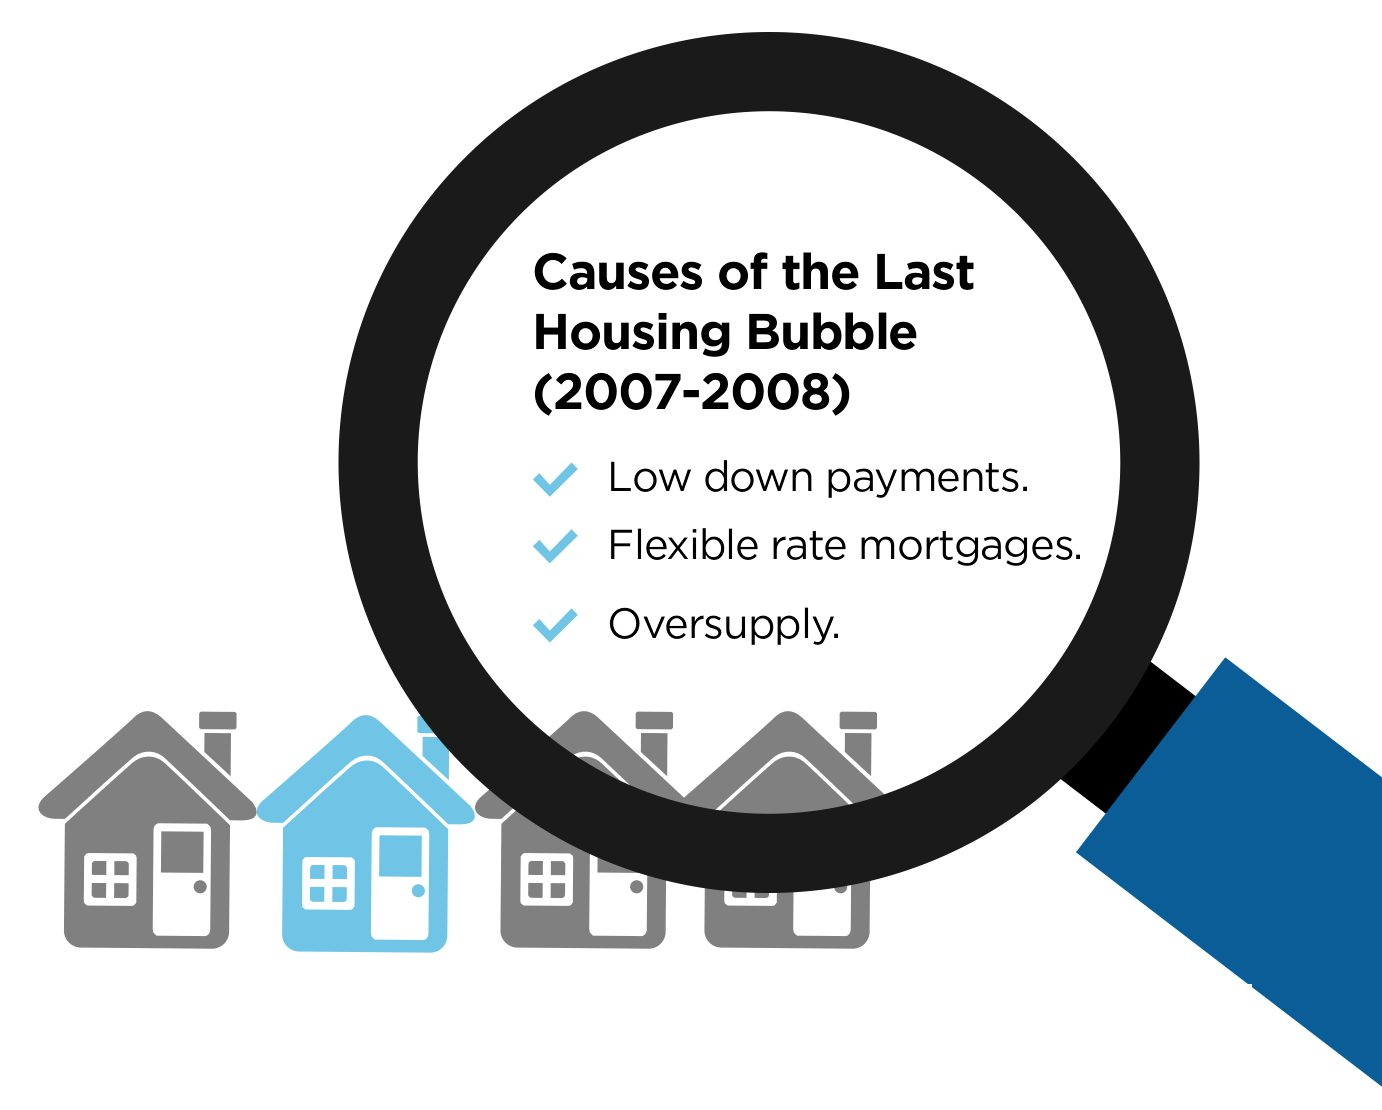 causes of last housing bubble